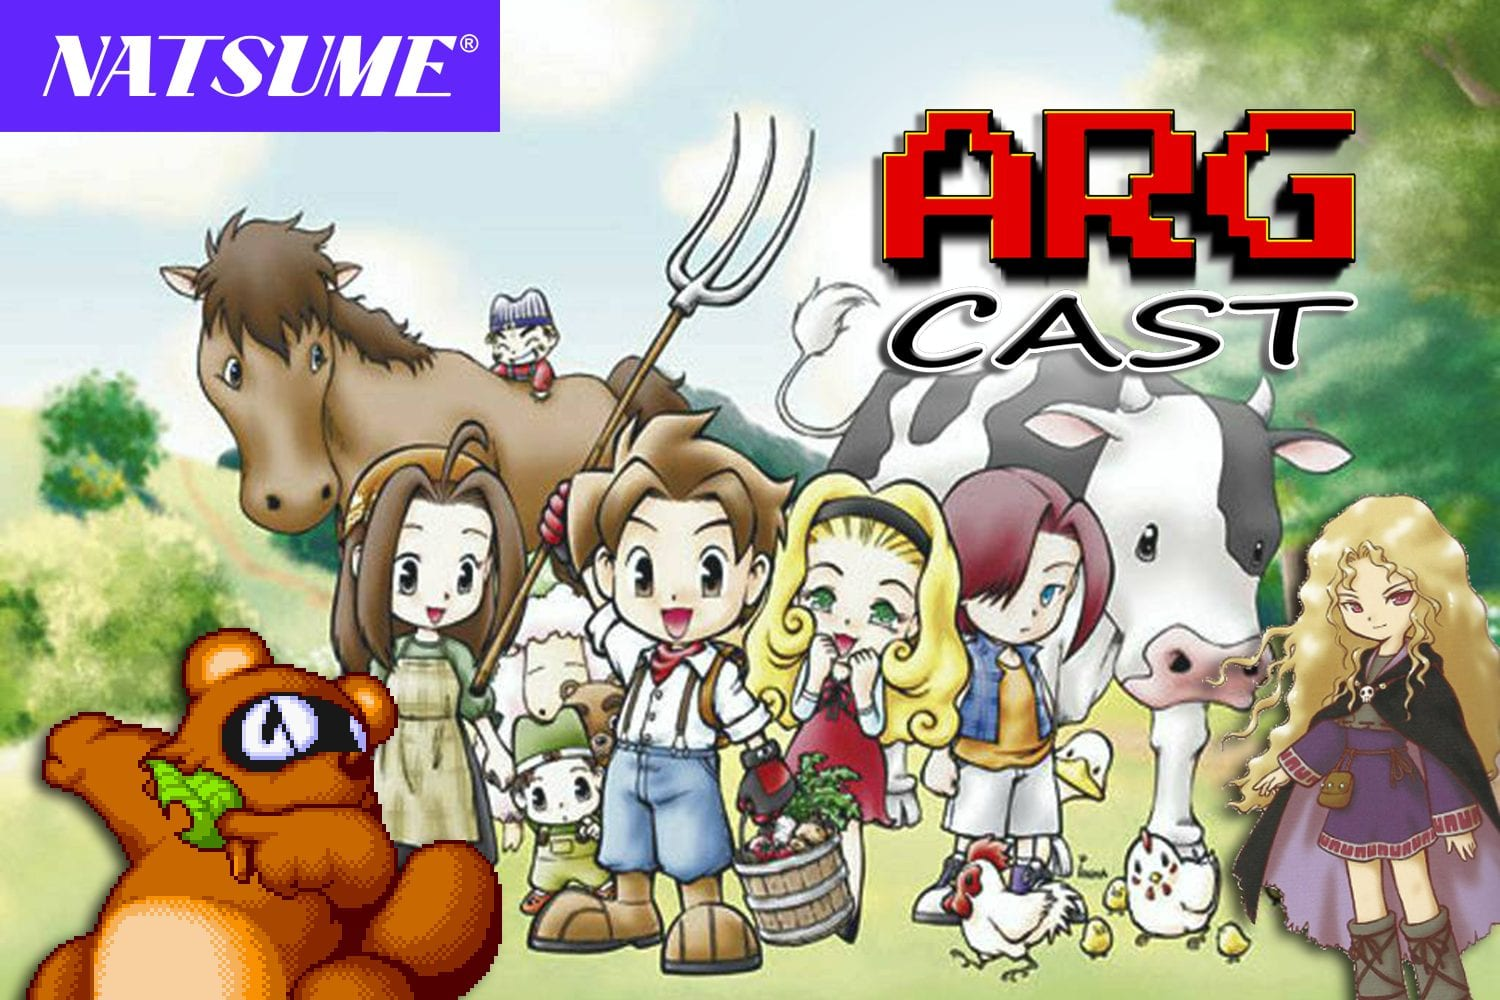 ARGcast #52: Farming Harvest Moon Memories with Natsume